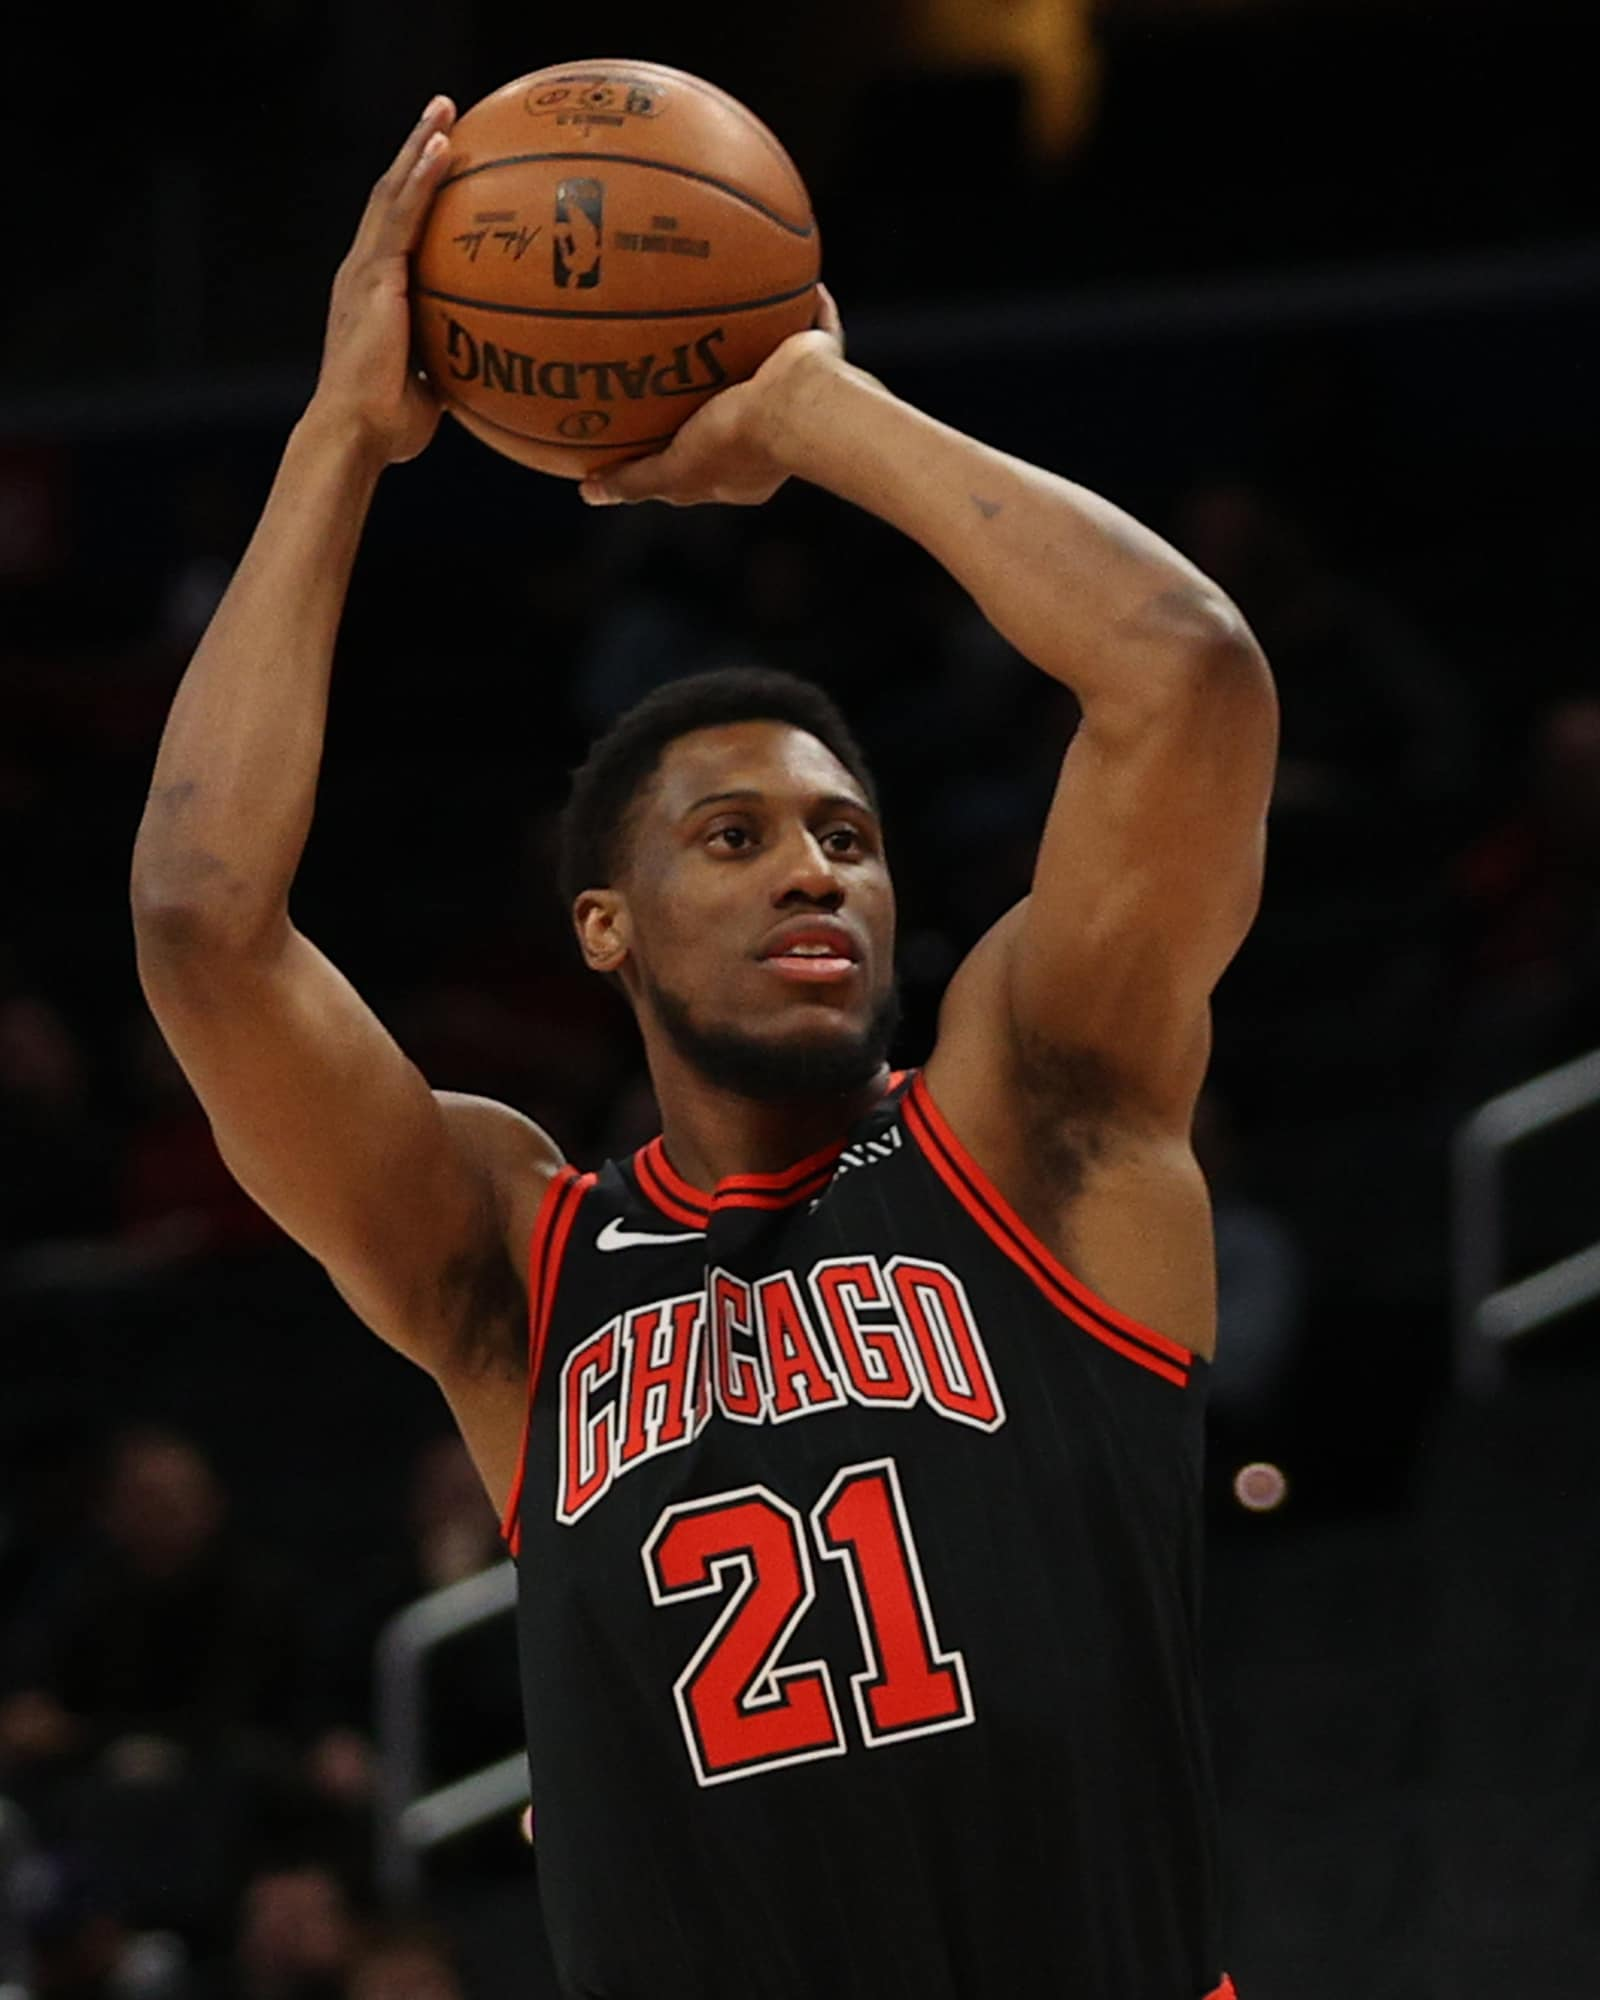 Thad Young finished the season averaging 10.3 points per game.